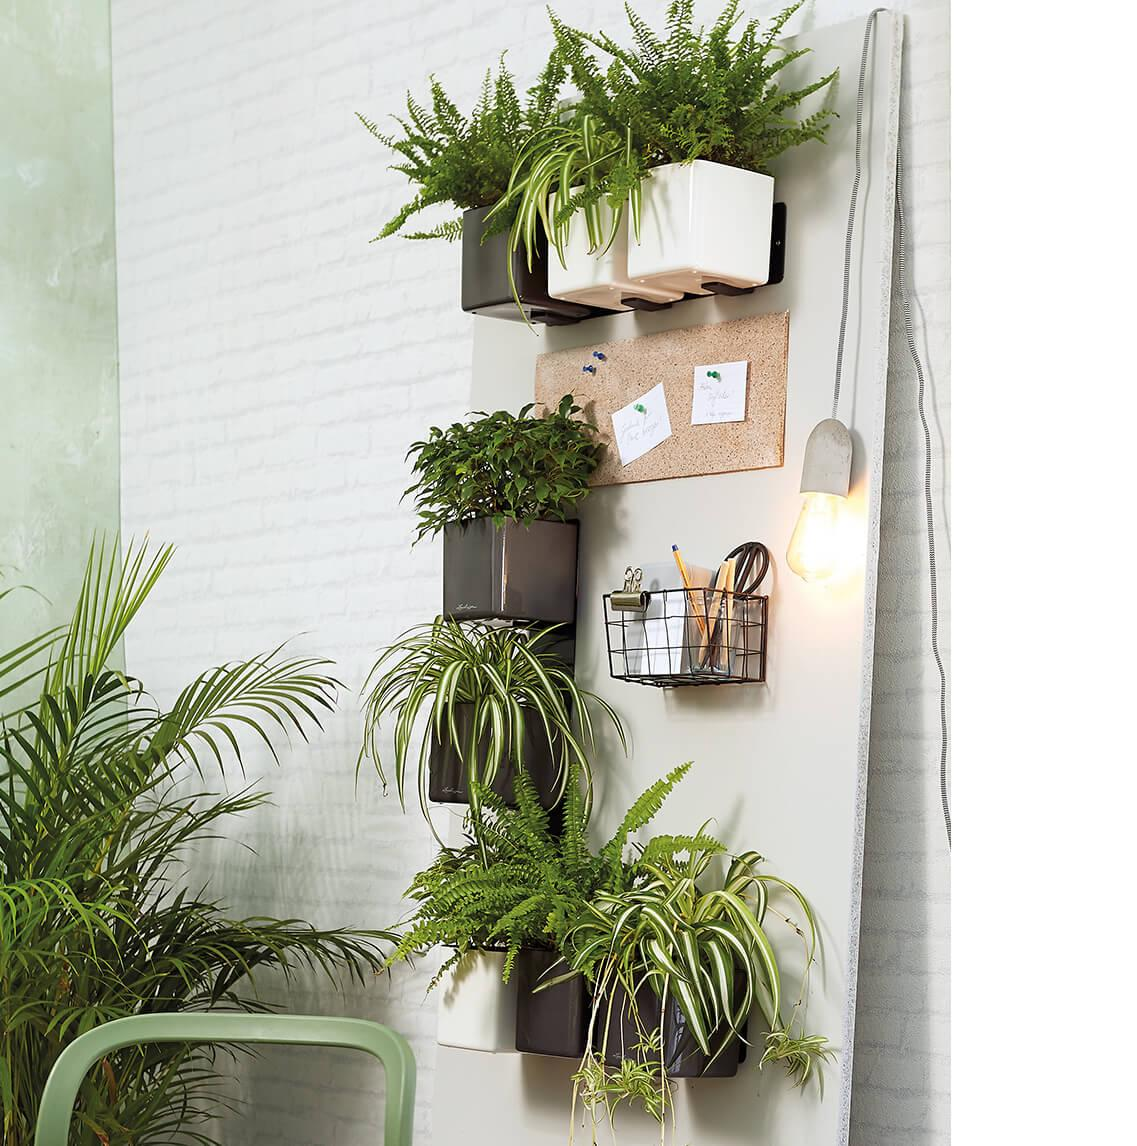 Several Green Wall Kits hang on one wall together with a pen holder and pin board